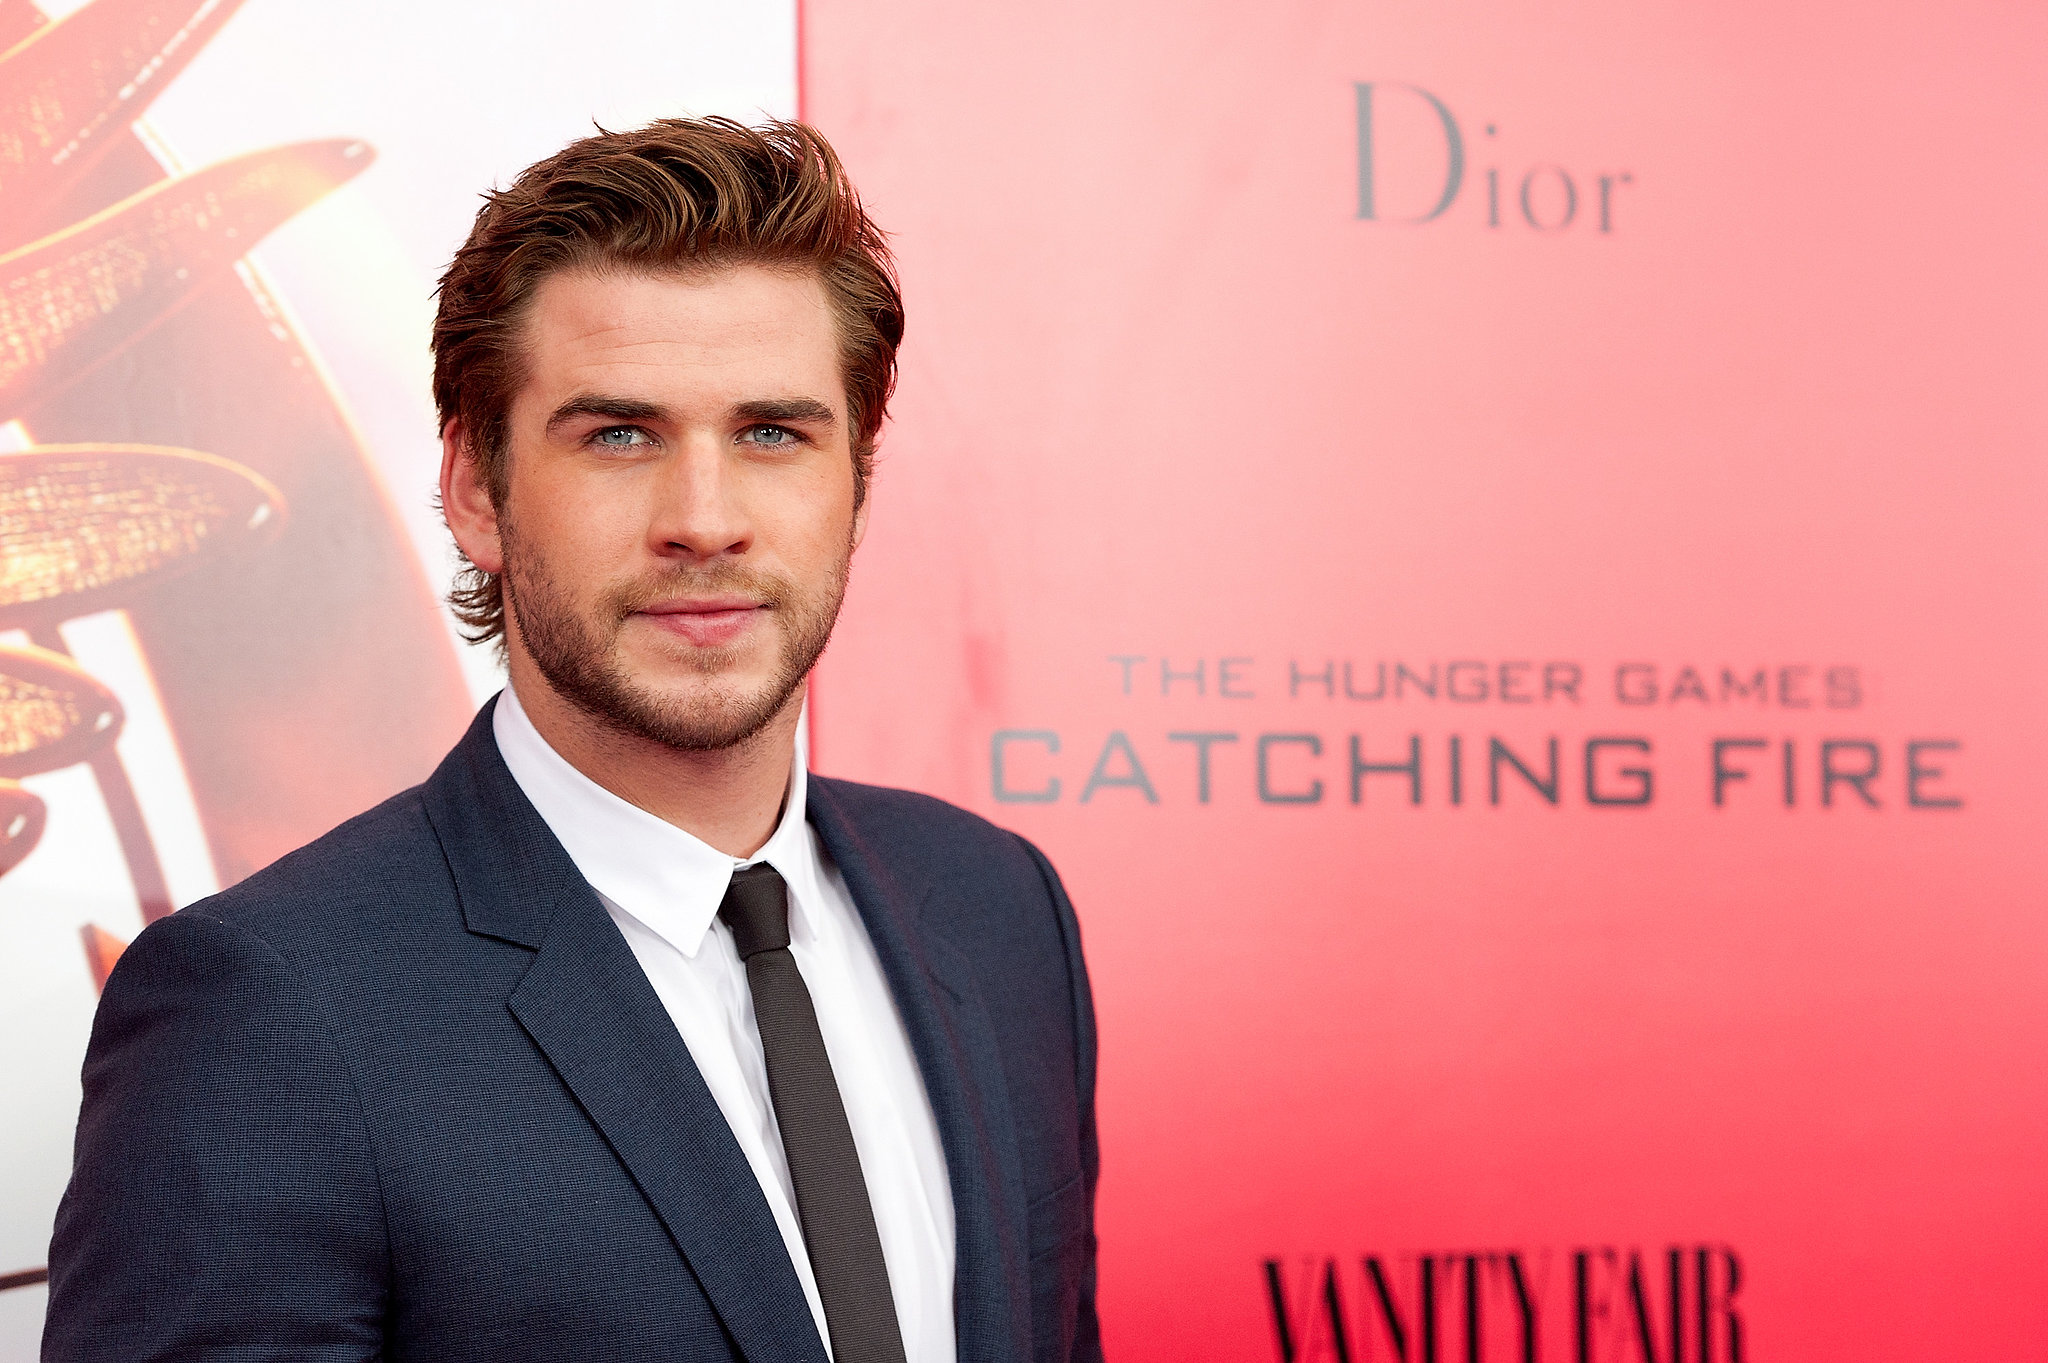 Liam Hemsworth looked handsome as usual on the red carpet.